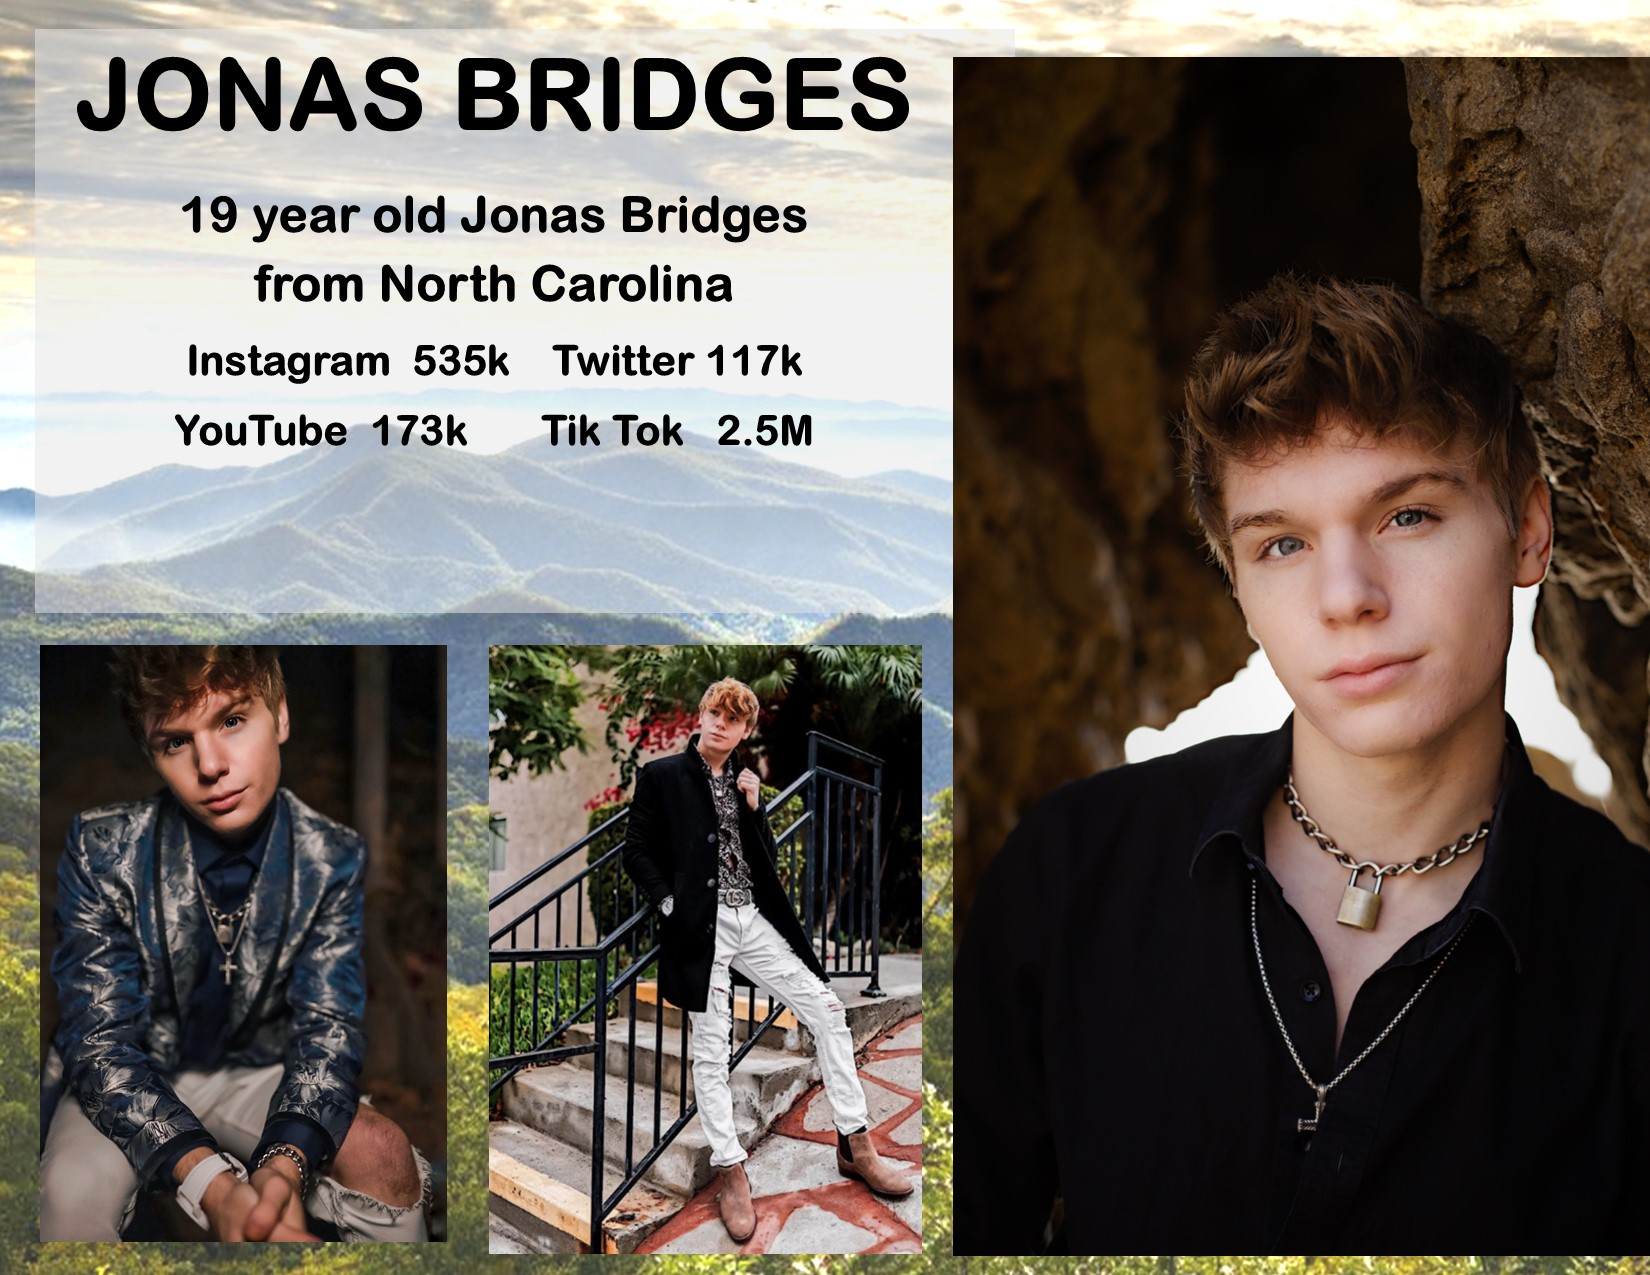 Jonas Bridges